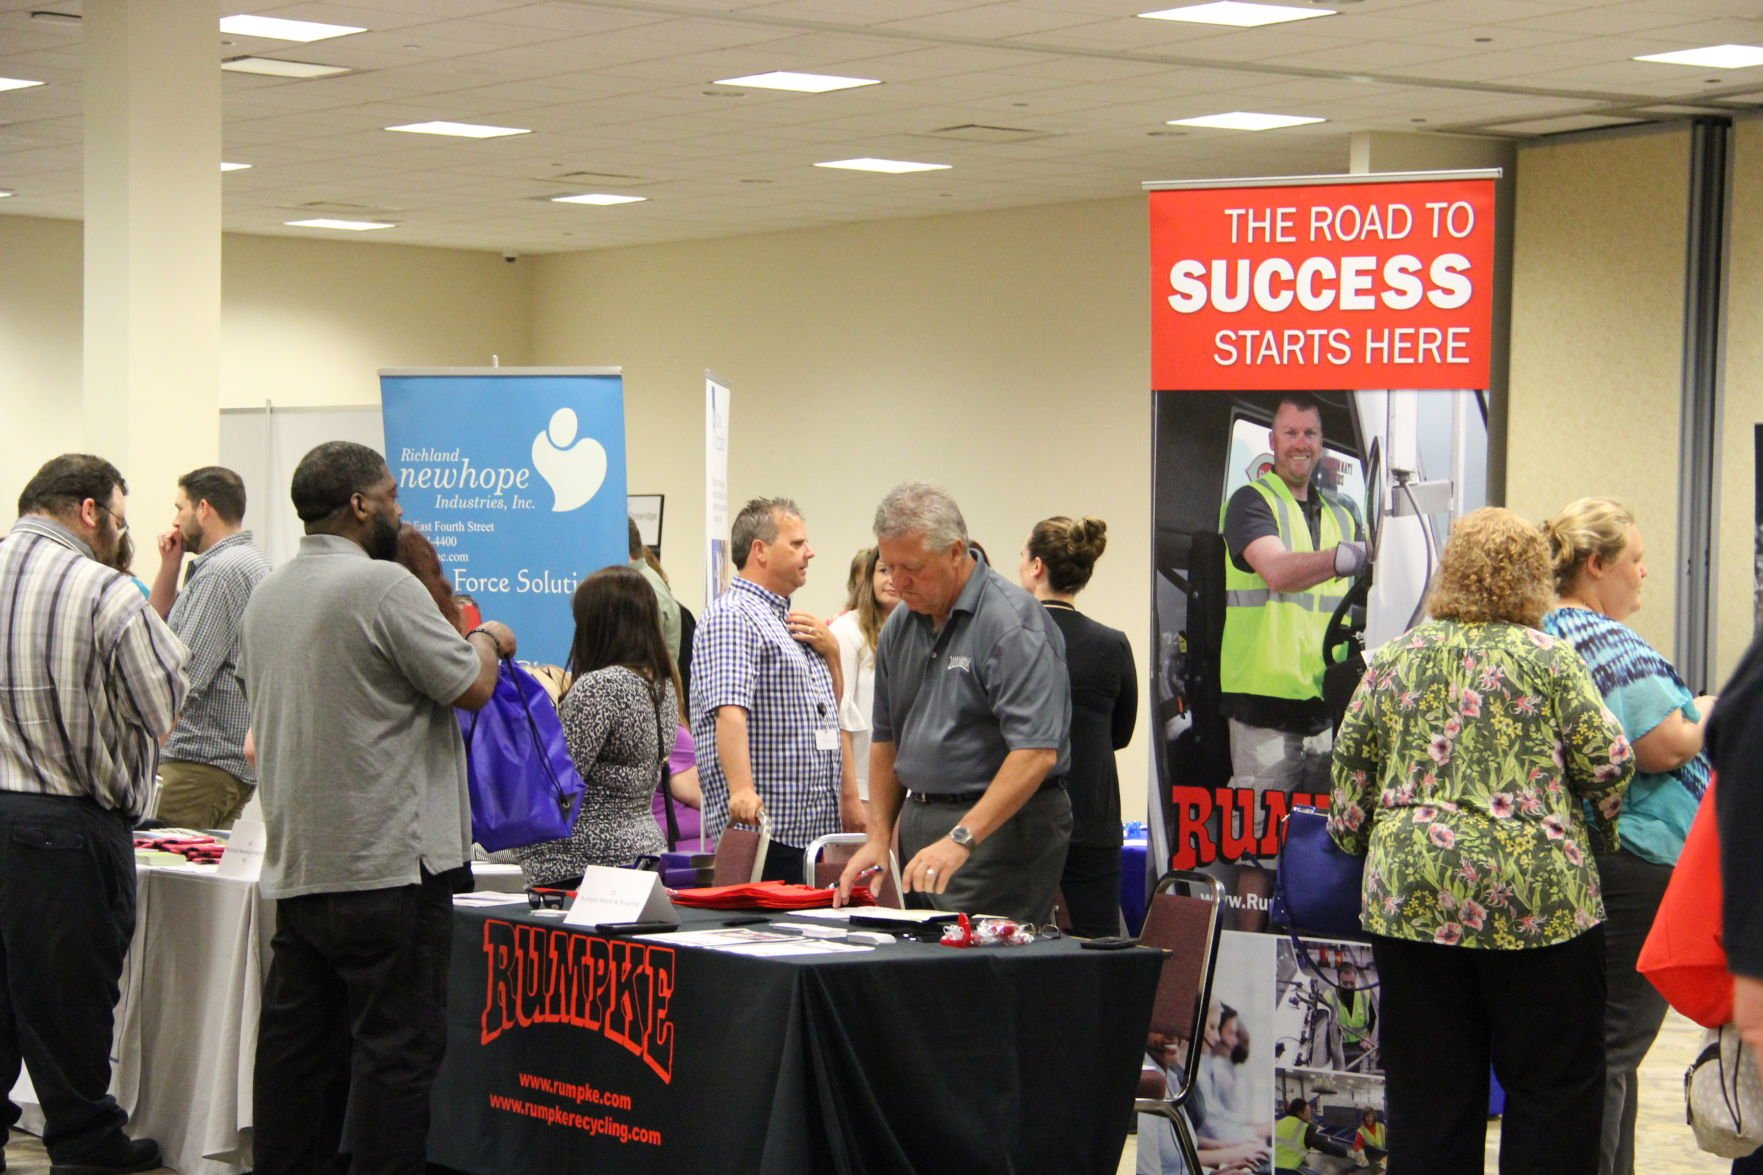 Upcoming job fair features opportunities for adults, students